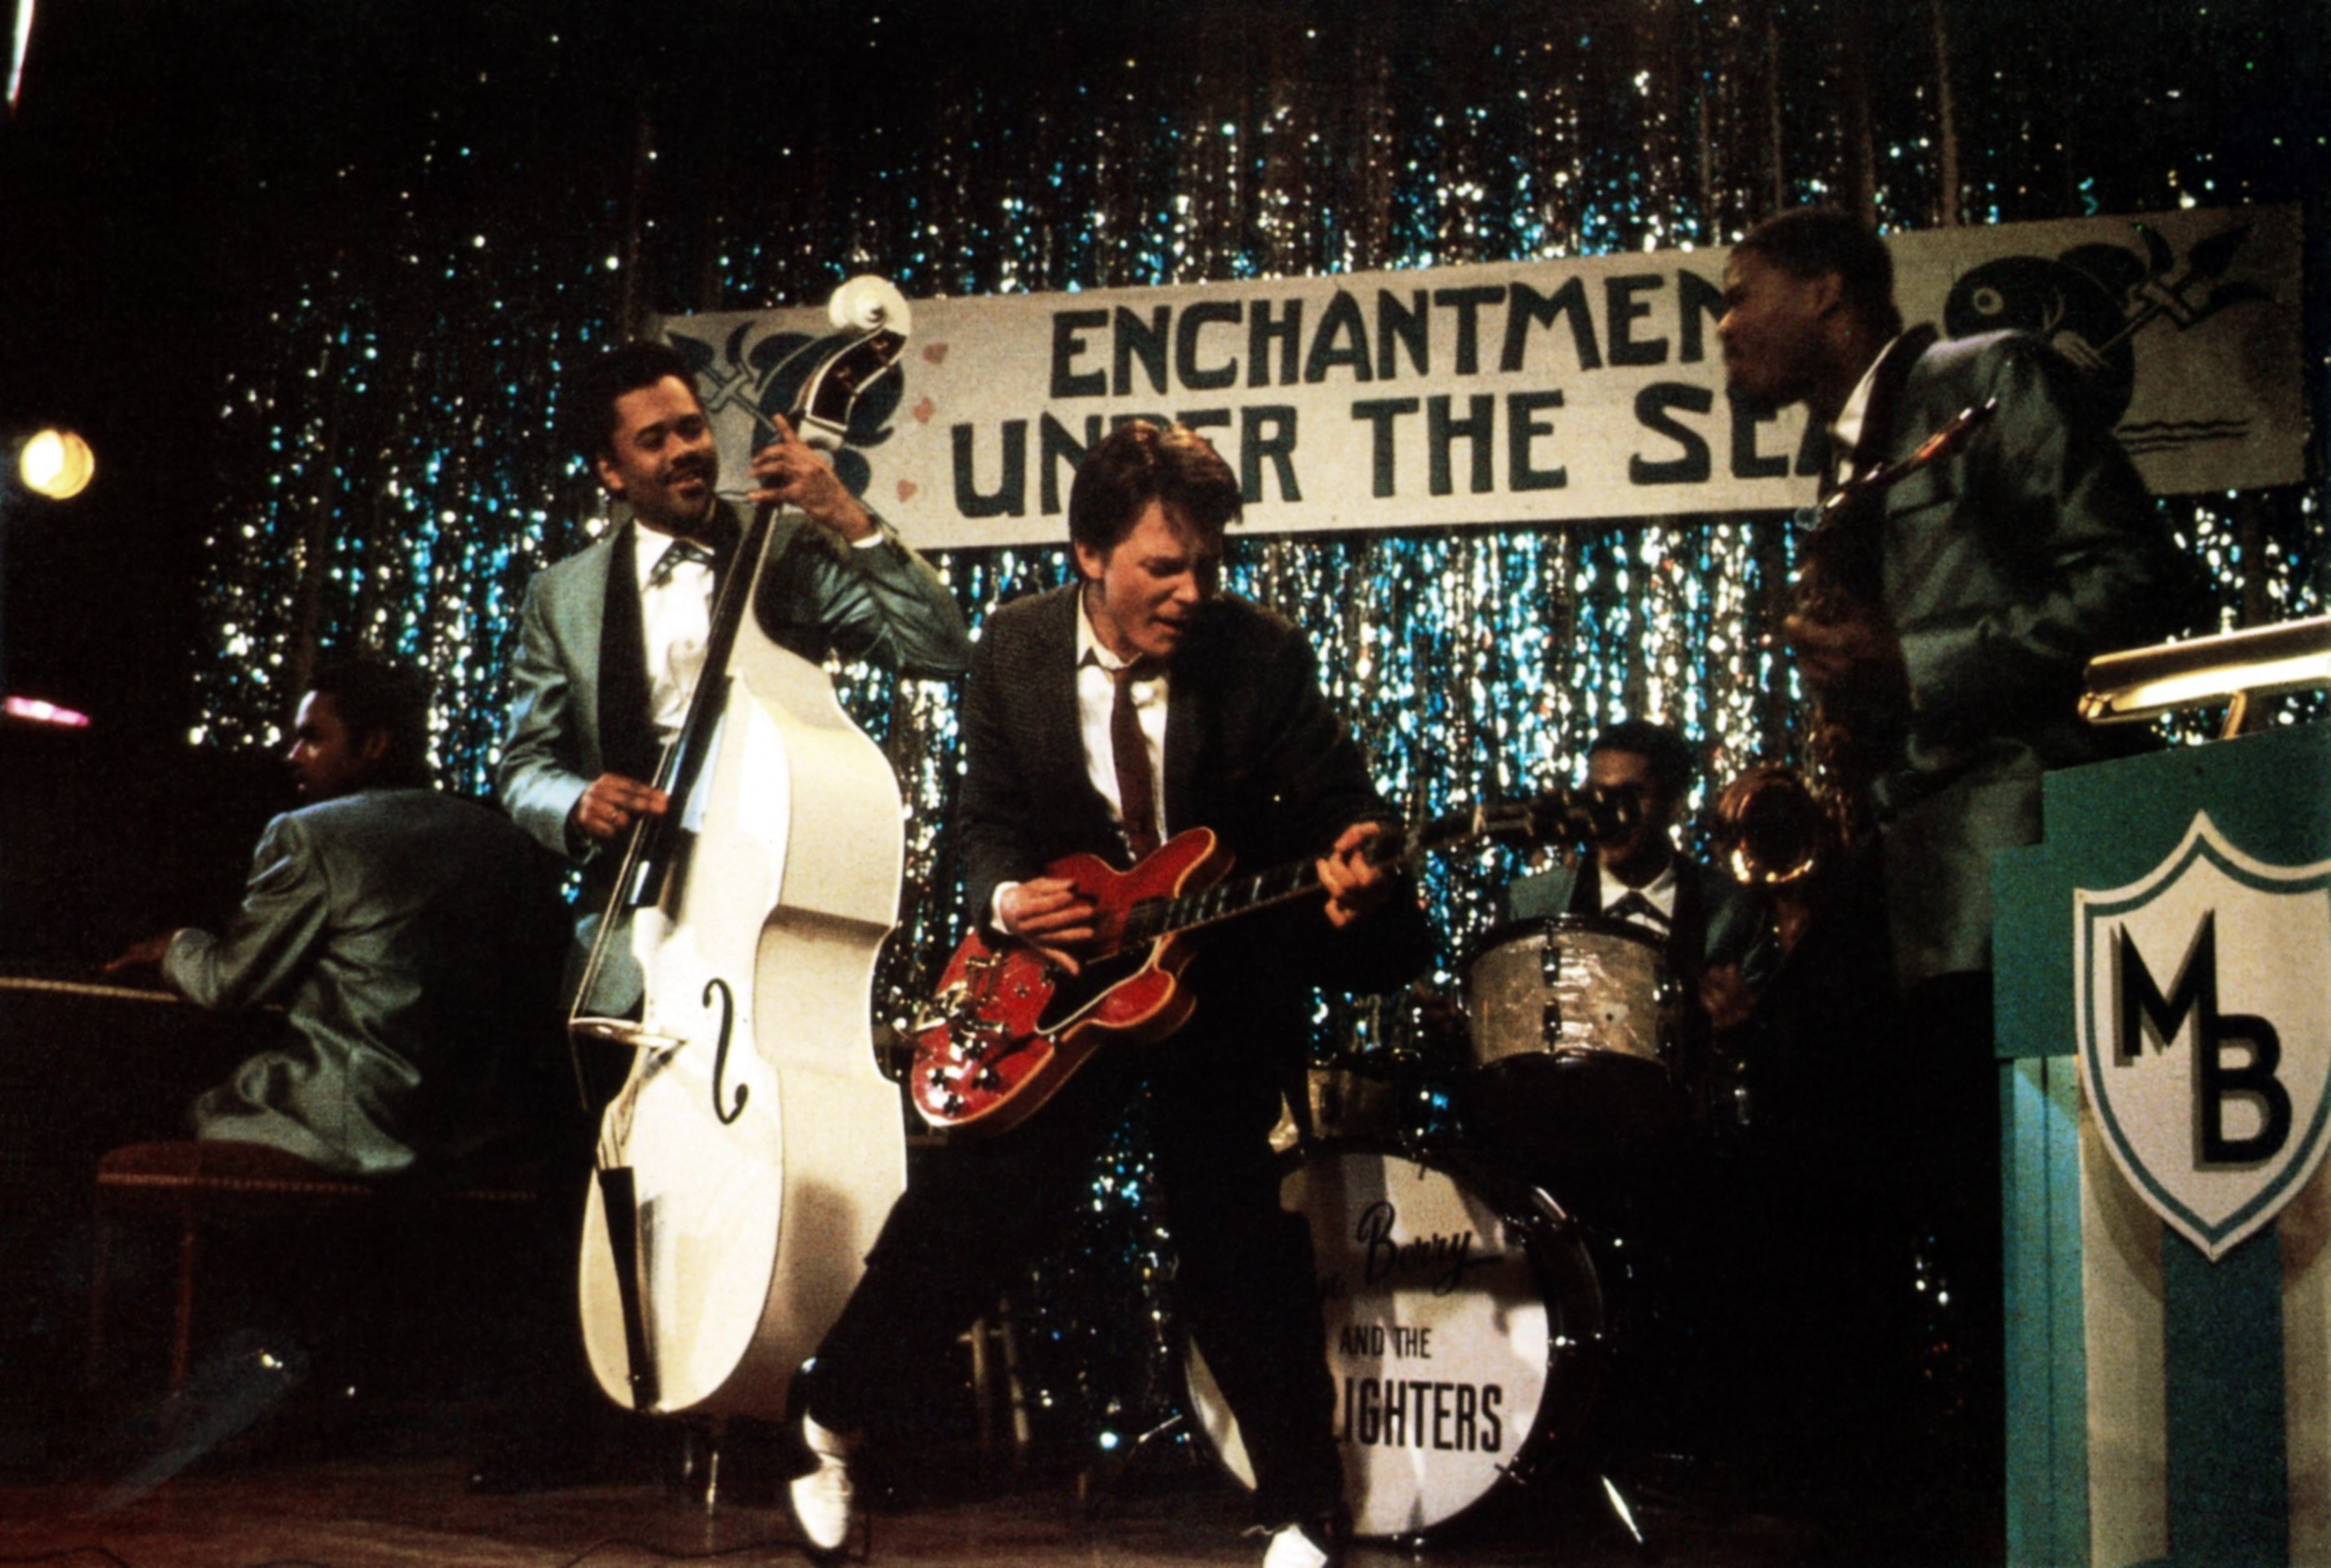 Enchantment Under the Sea Dance Party